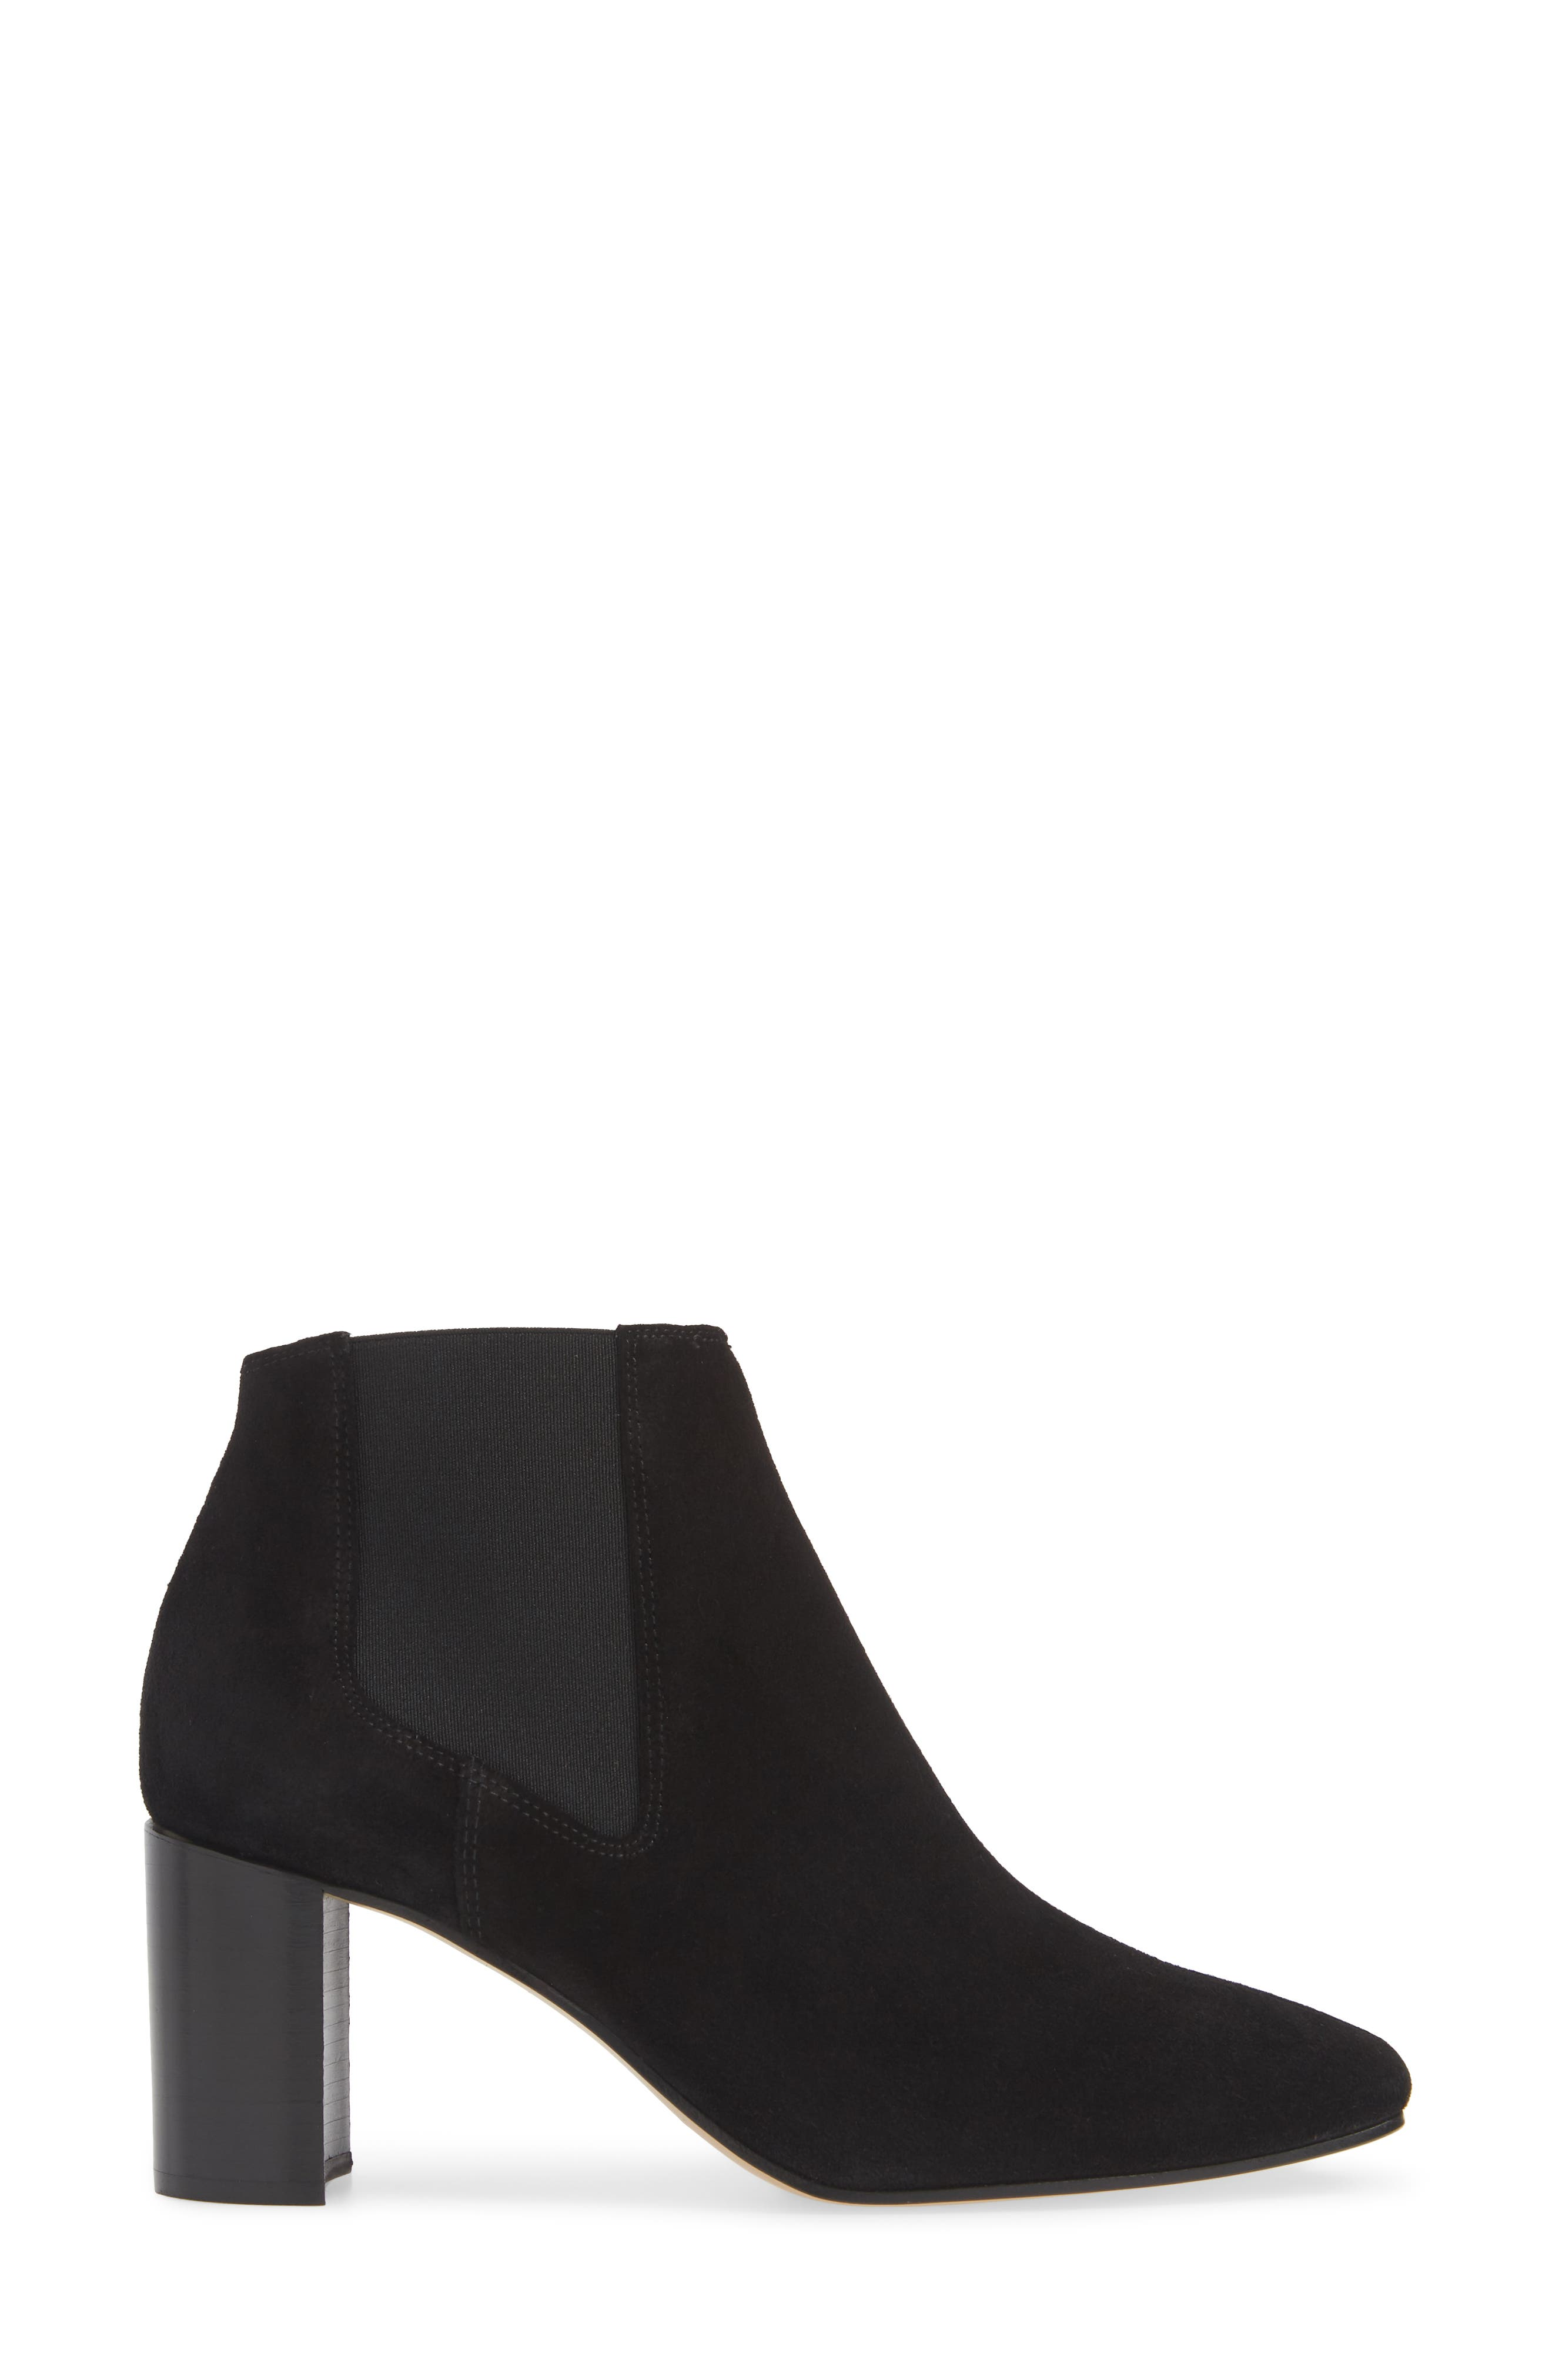 Asleen Boot,                             Alternate thumbnail 3, color,                             BLACK SUEDE